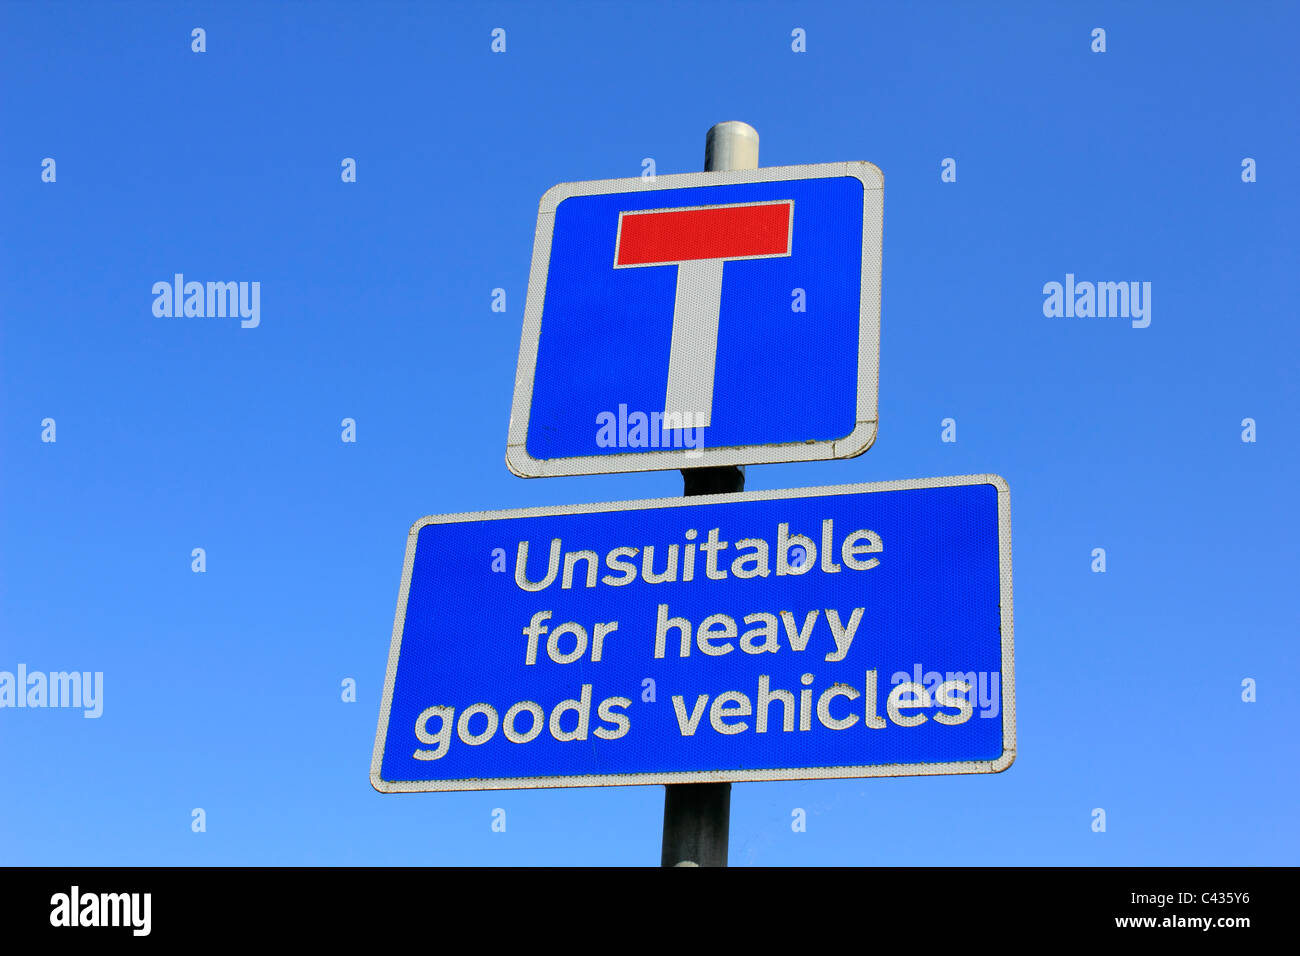 T junction dead end - unsuitable for heavy goods vehicles, road signs, Ewell Surrey England UK - Stock Image